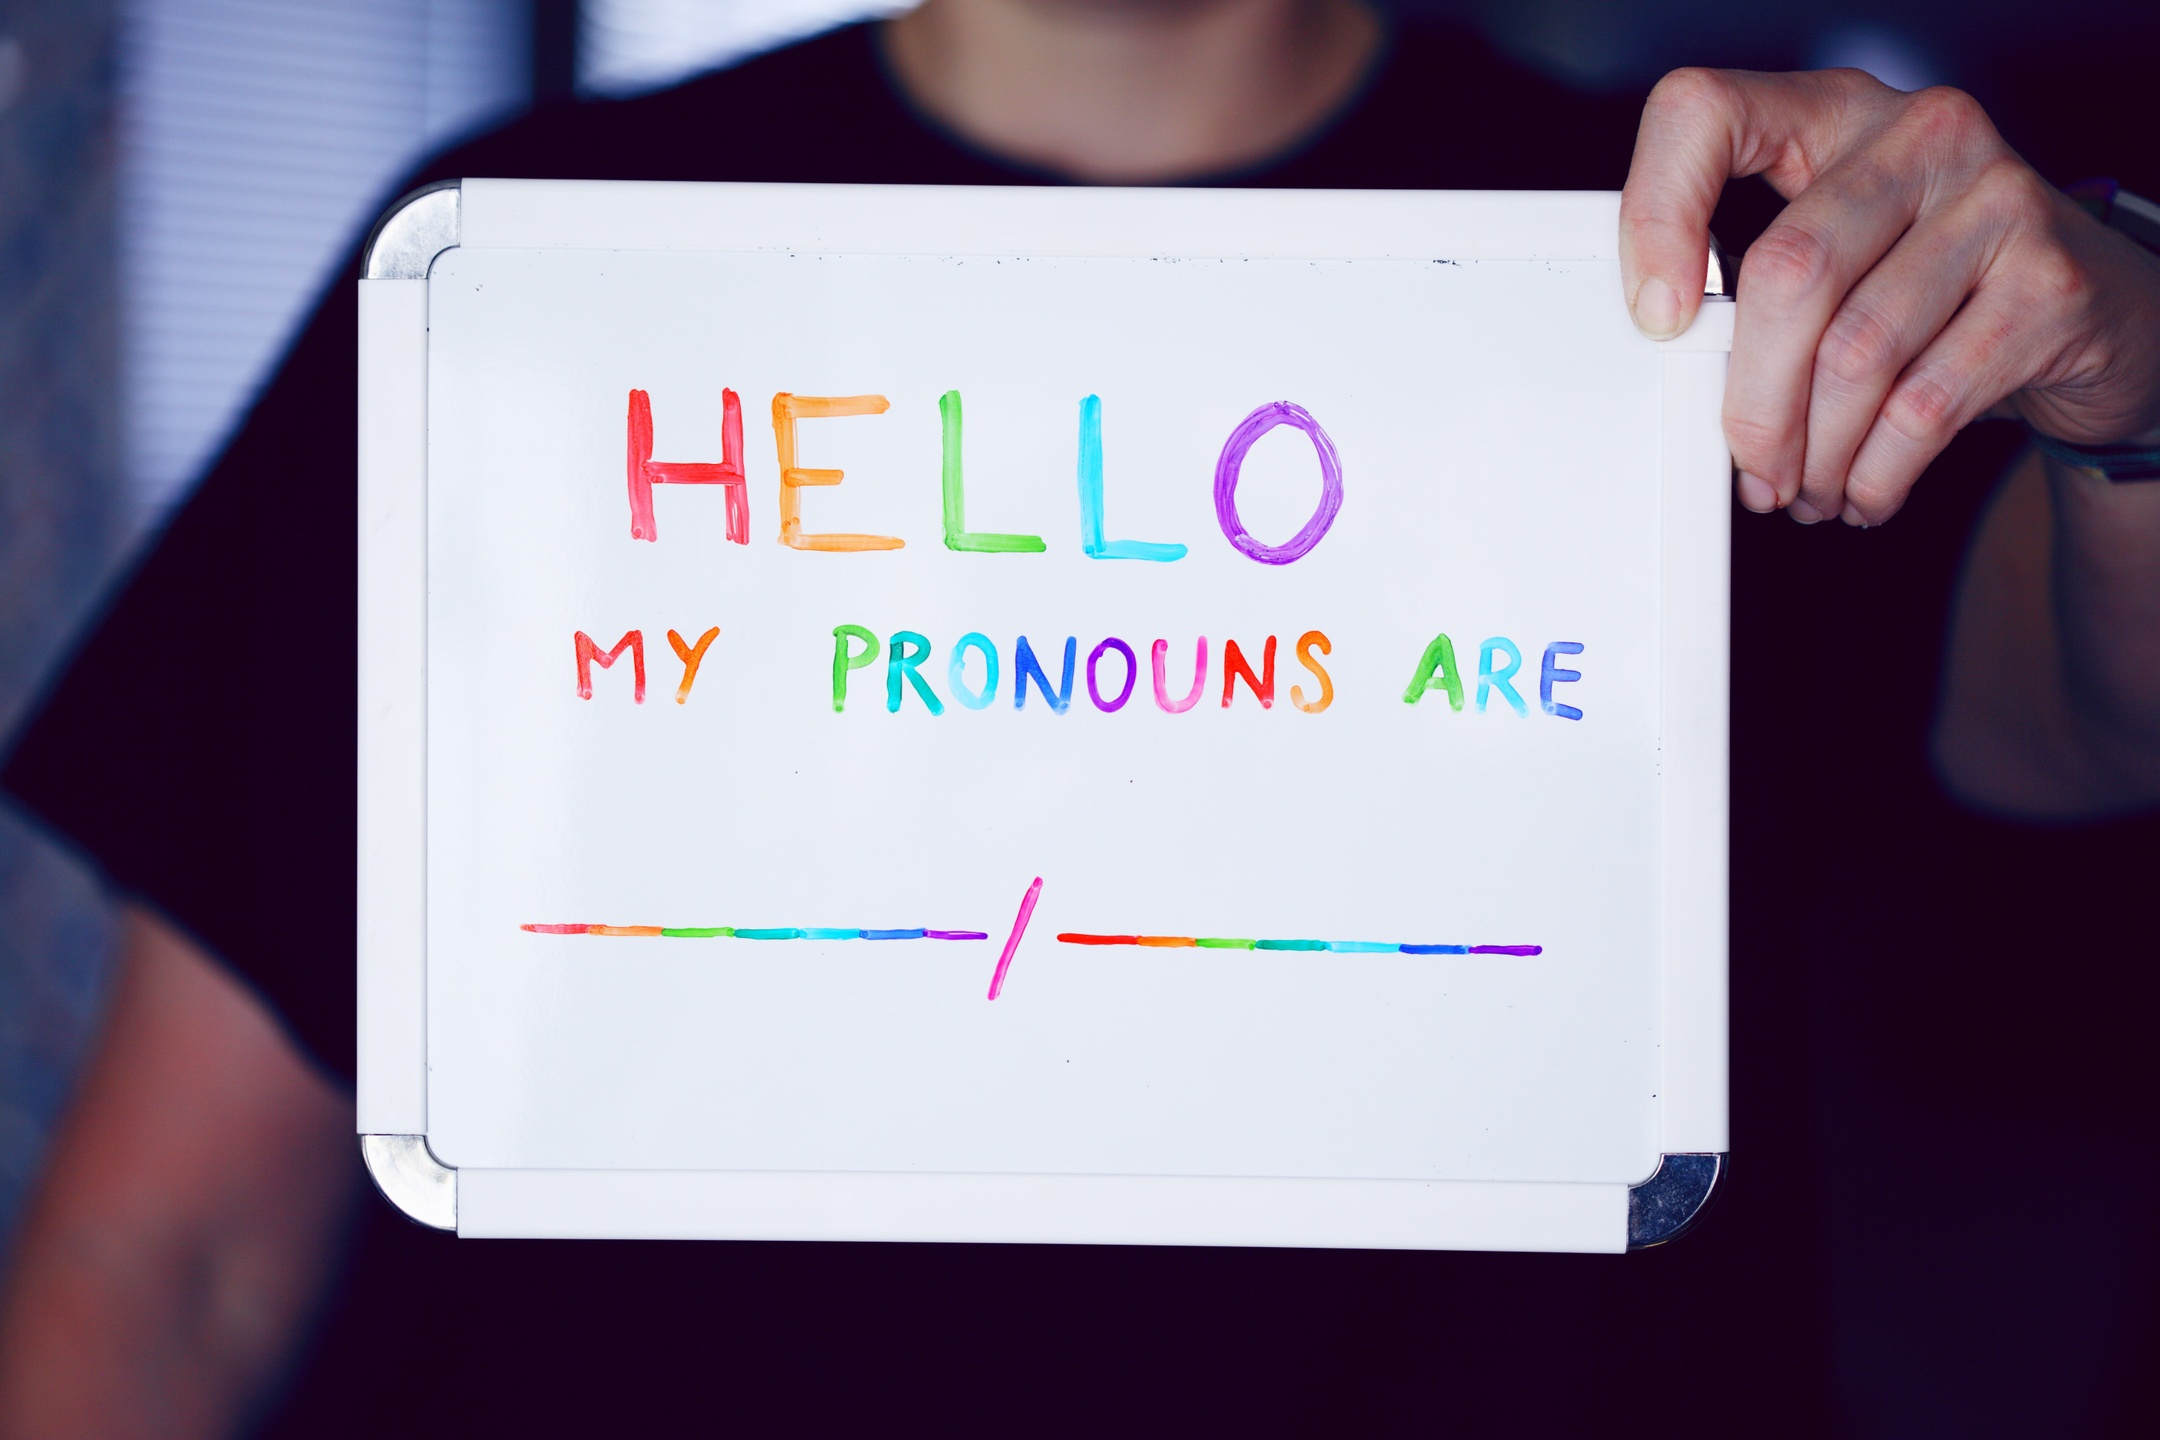 My pronouns are